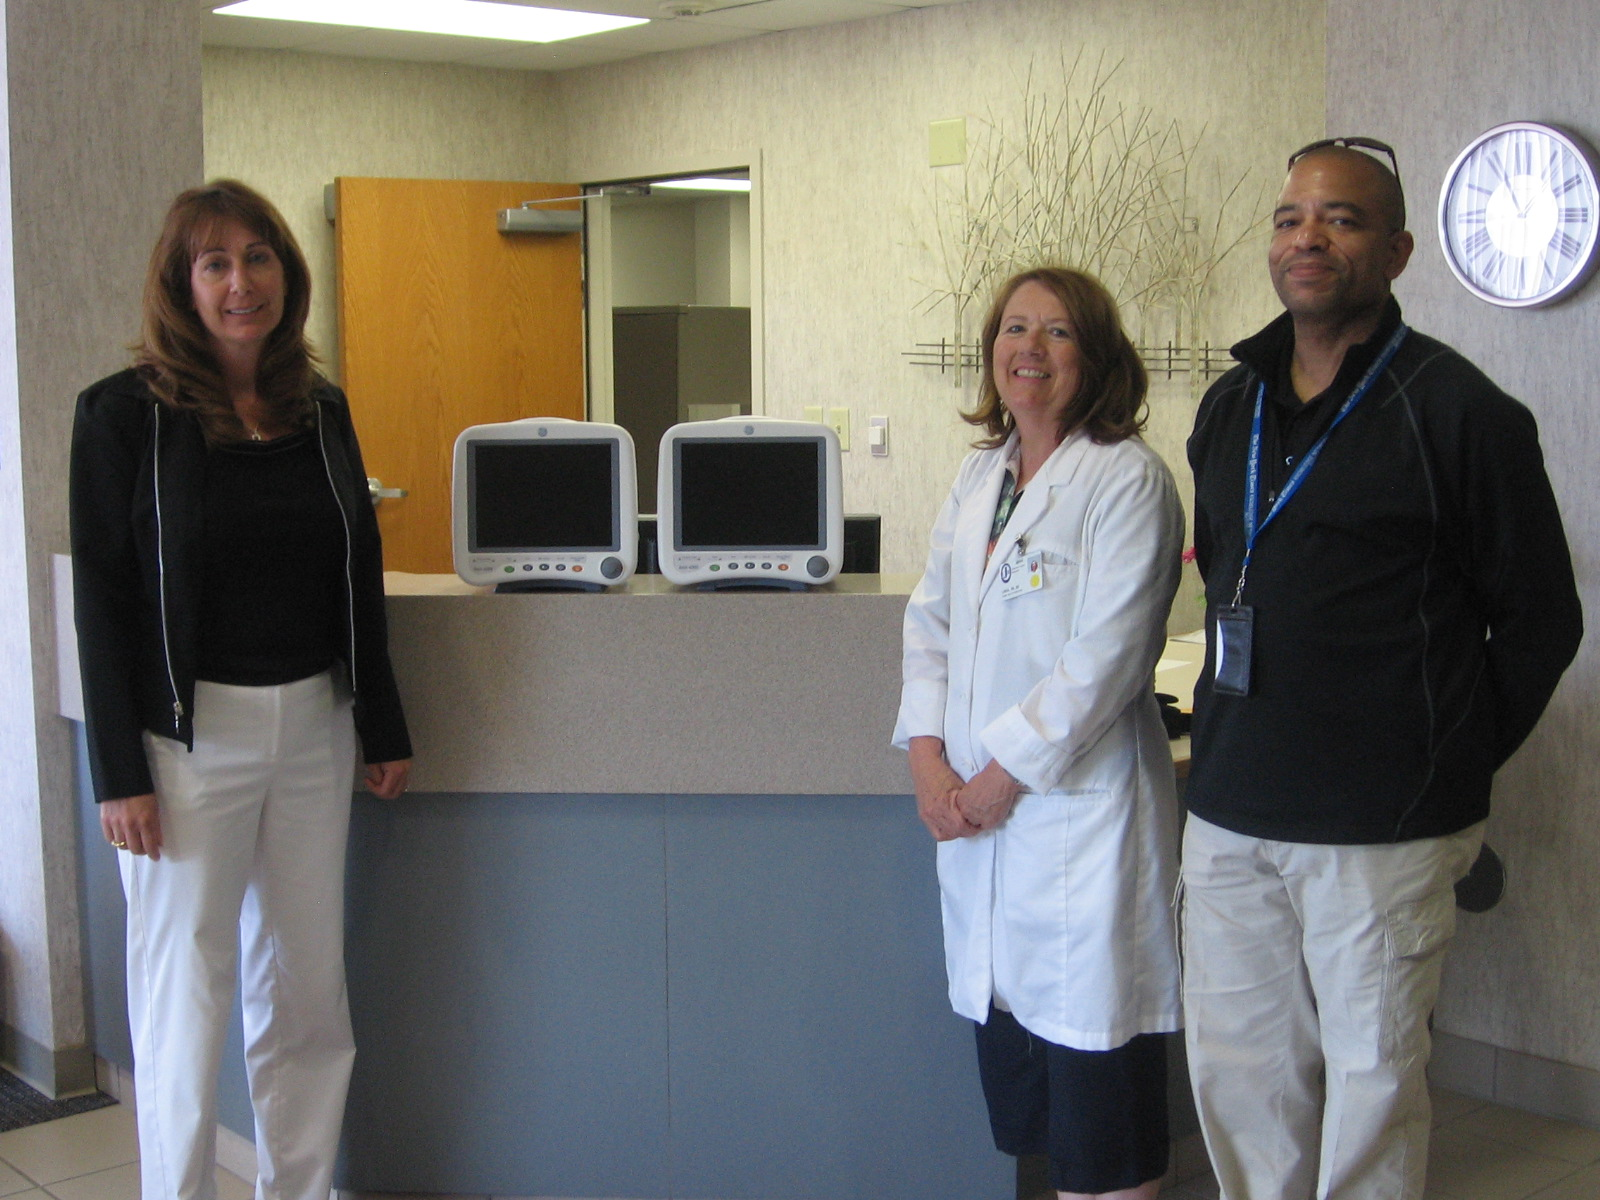 Hospital receives two blood pressure monitors